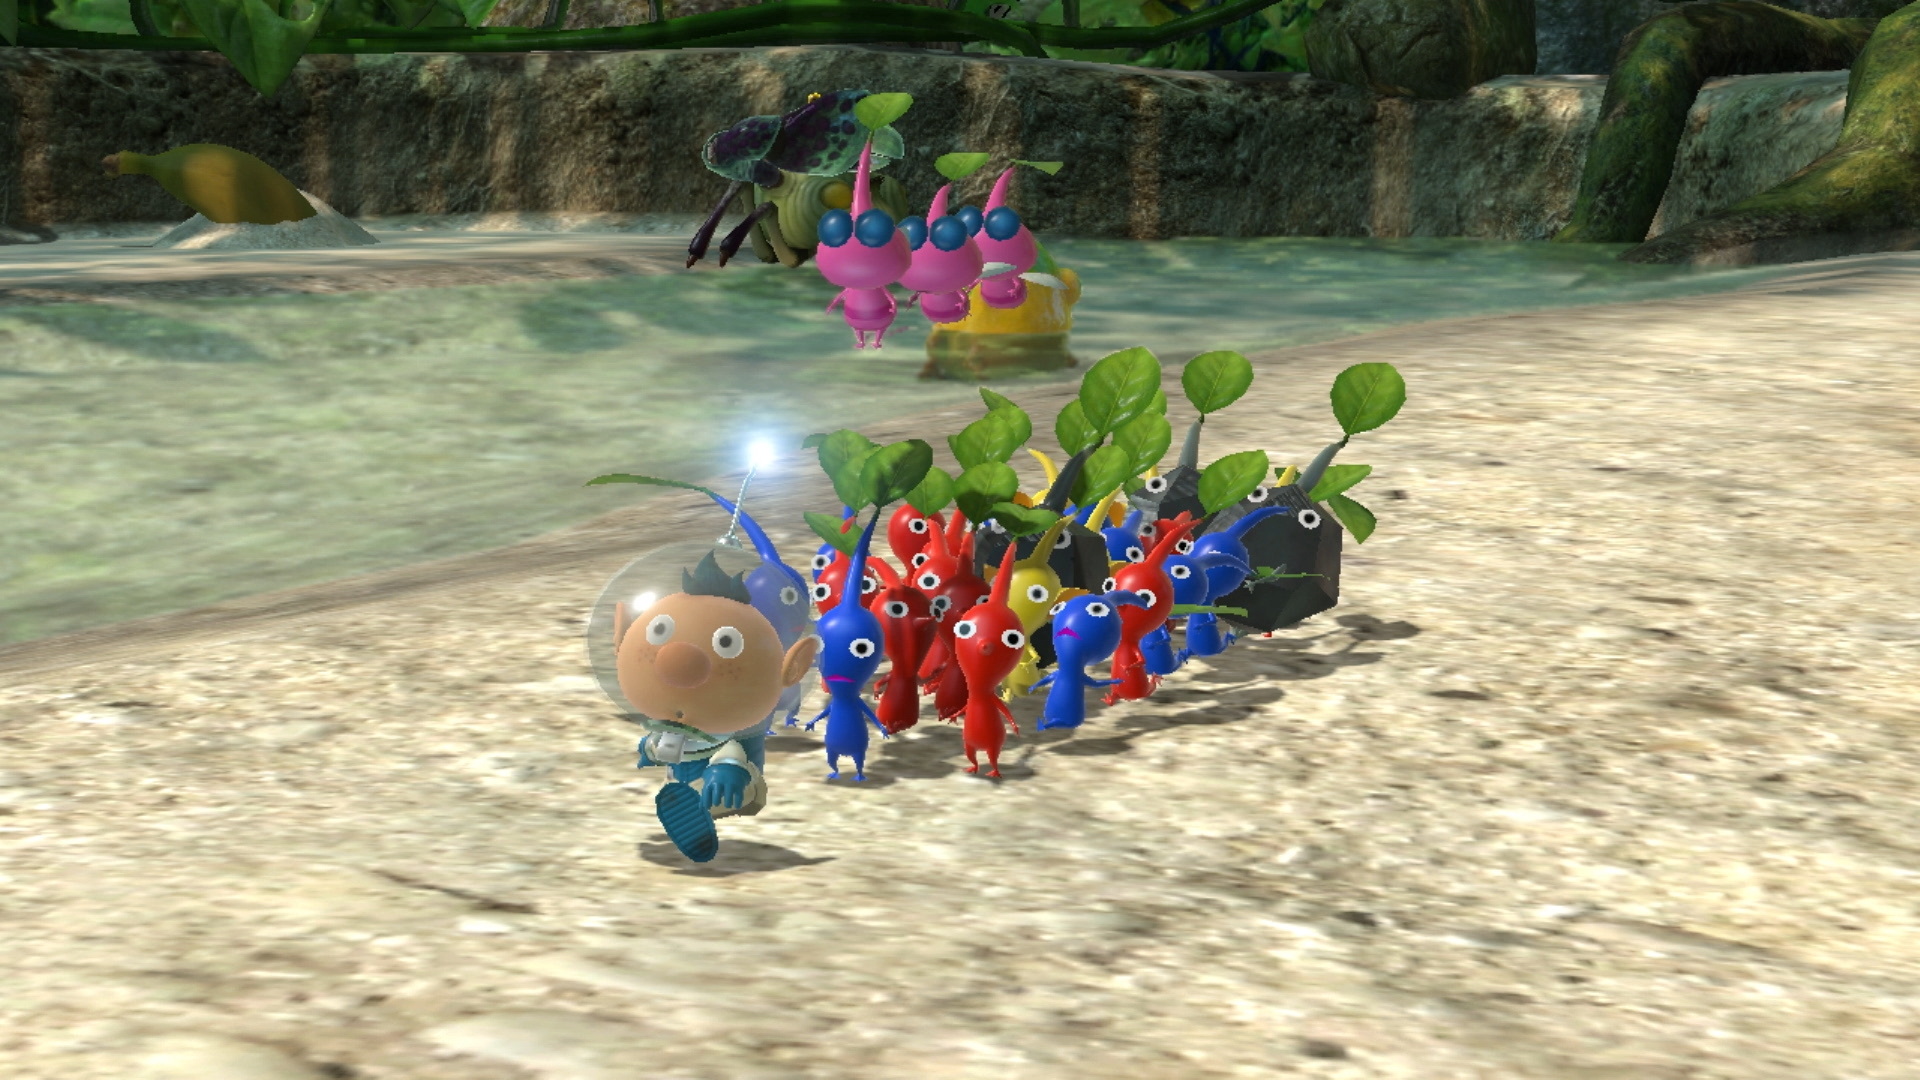 Nintendo Announces Pikmin 3 On Switch Then Deletes Cheaper Wii